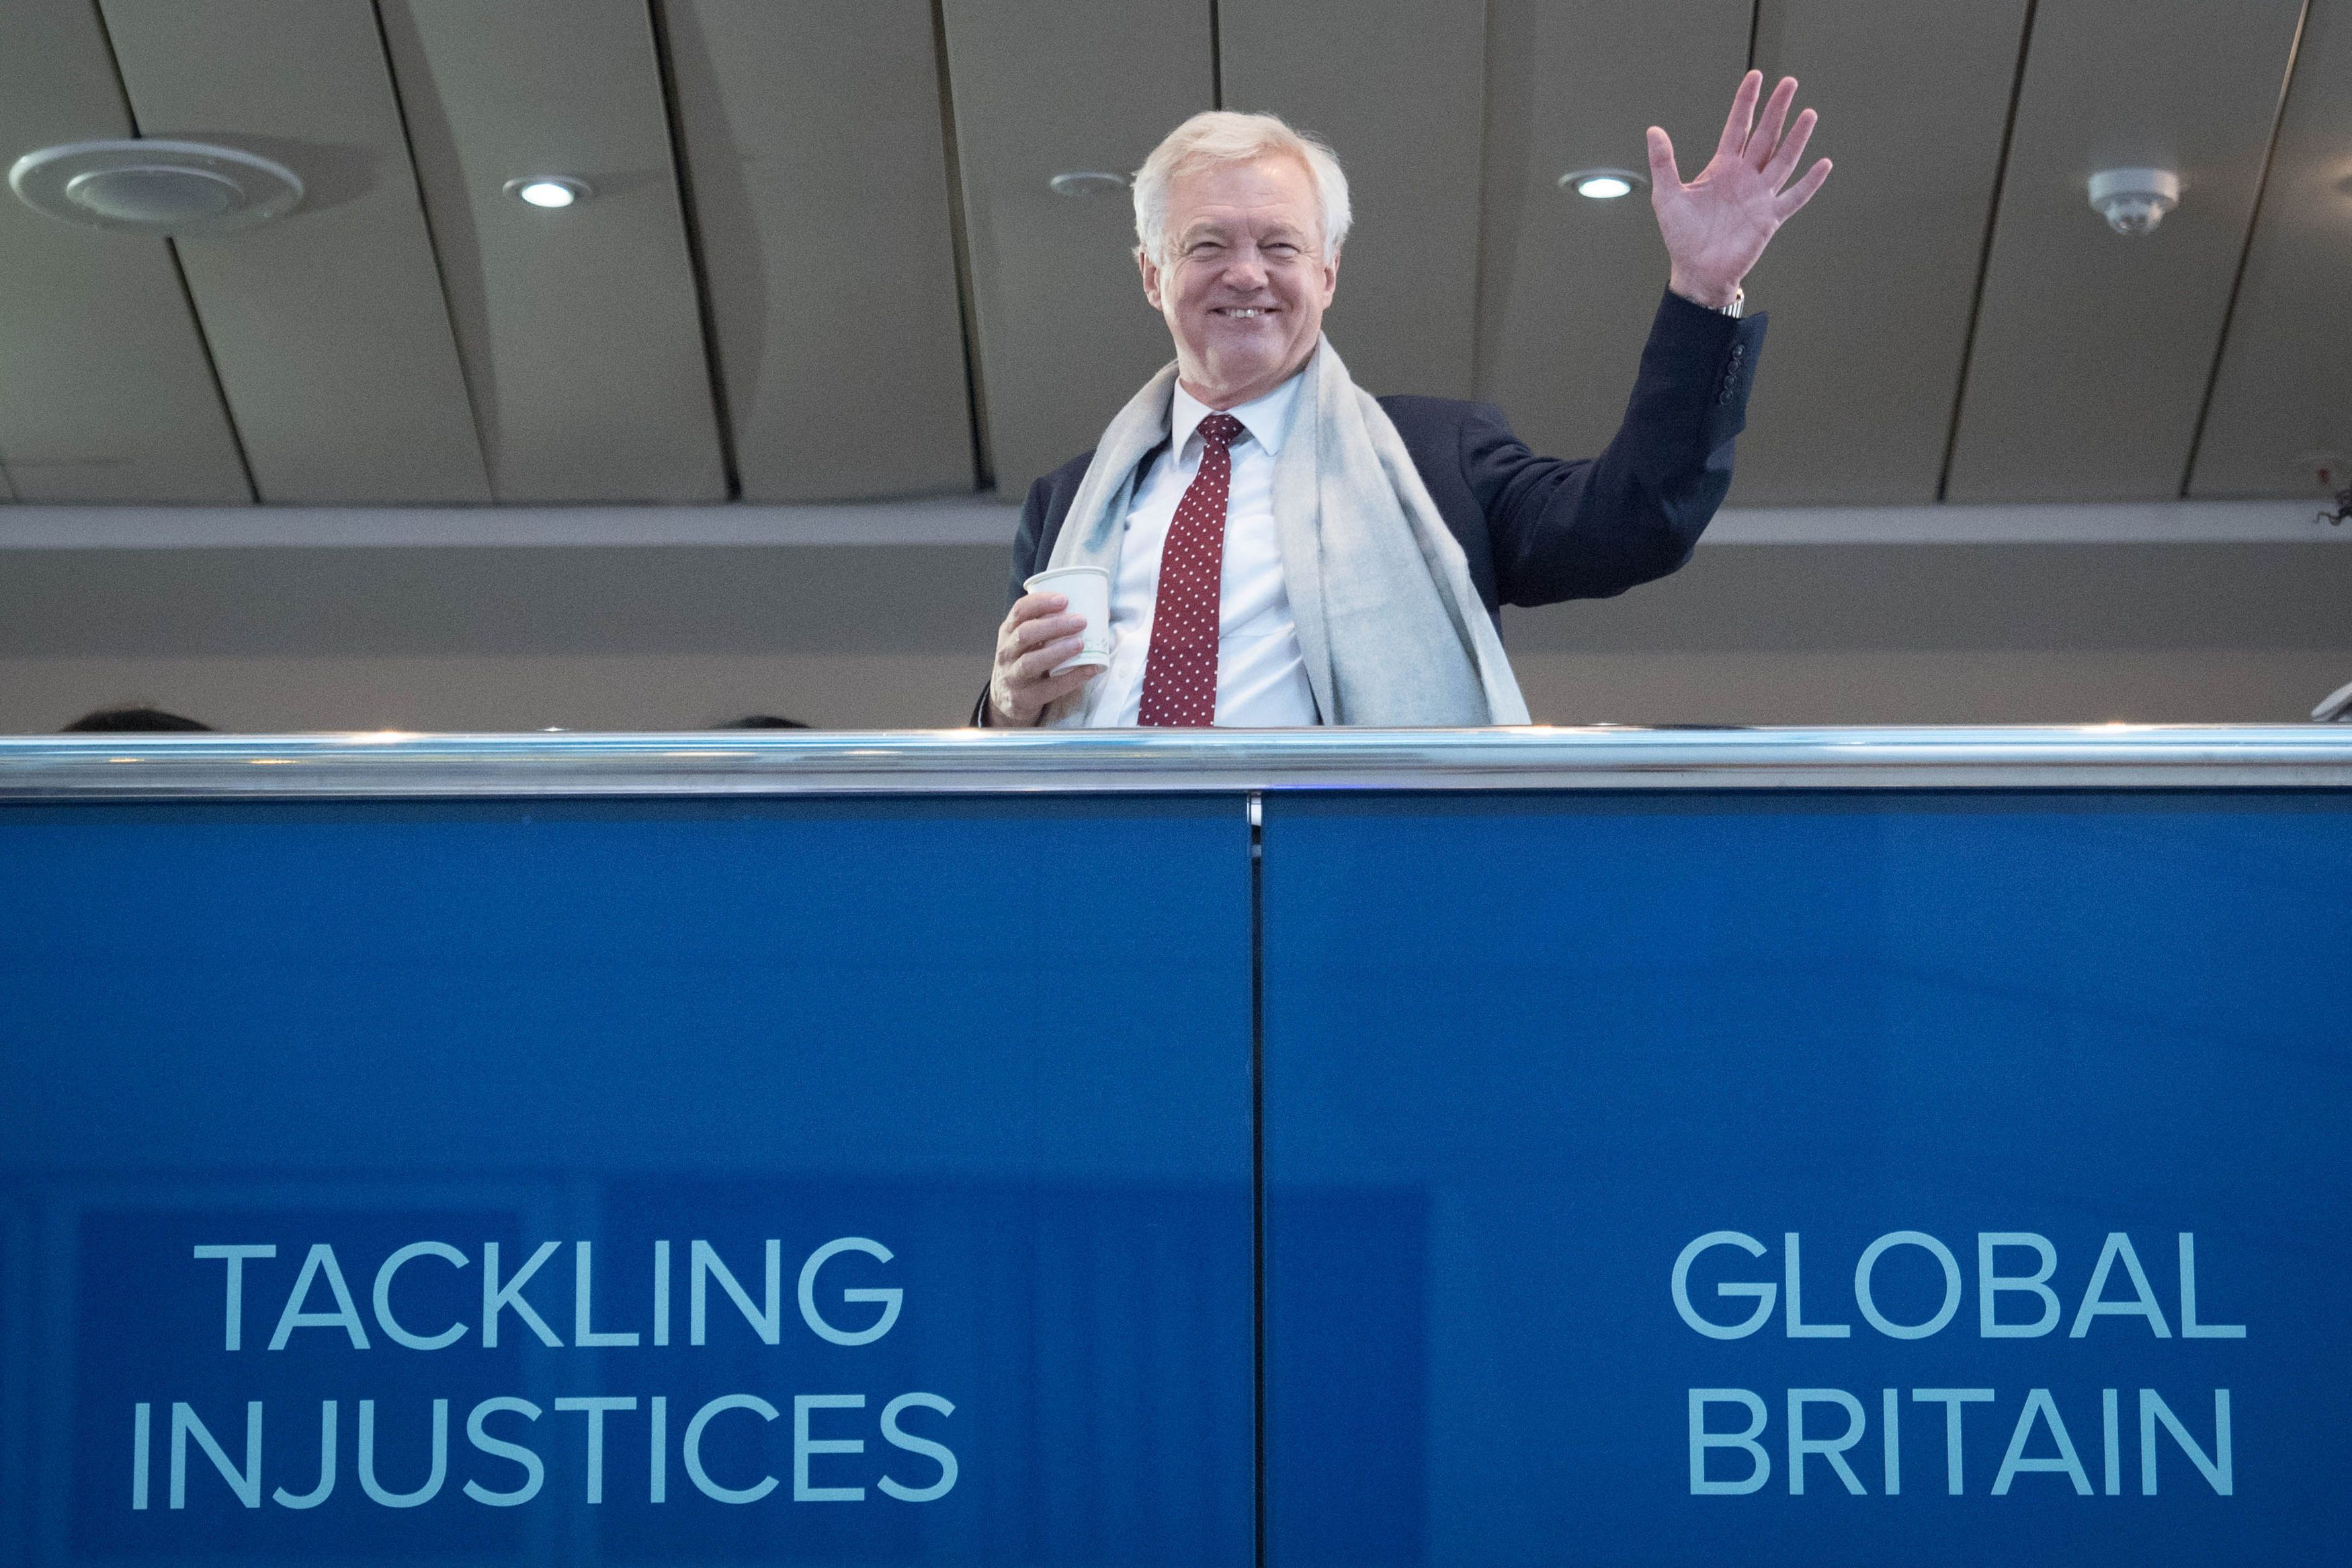 David Davis Reveals £3,000-An-Hour Job With Firm Led By No-Deal Brexit